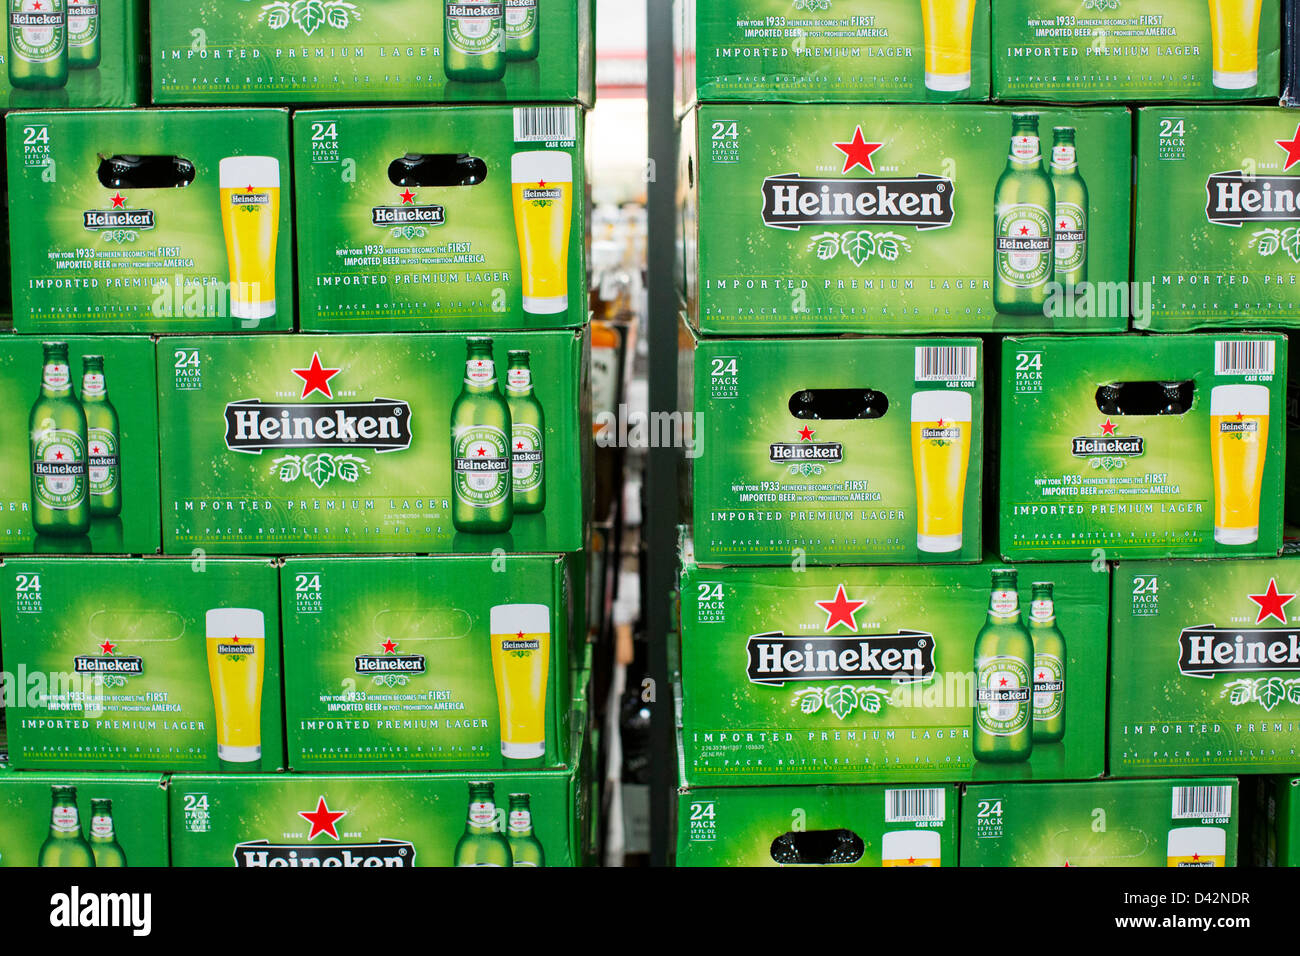 Heineken beer on display at a costco wholesale warehouse club stock heineken beer on display at a costco wholesale warehouse club stock photo 54150483 alamy thecheapjerseys Images